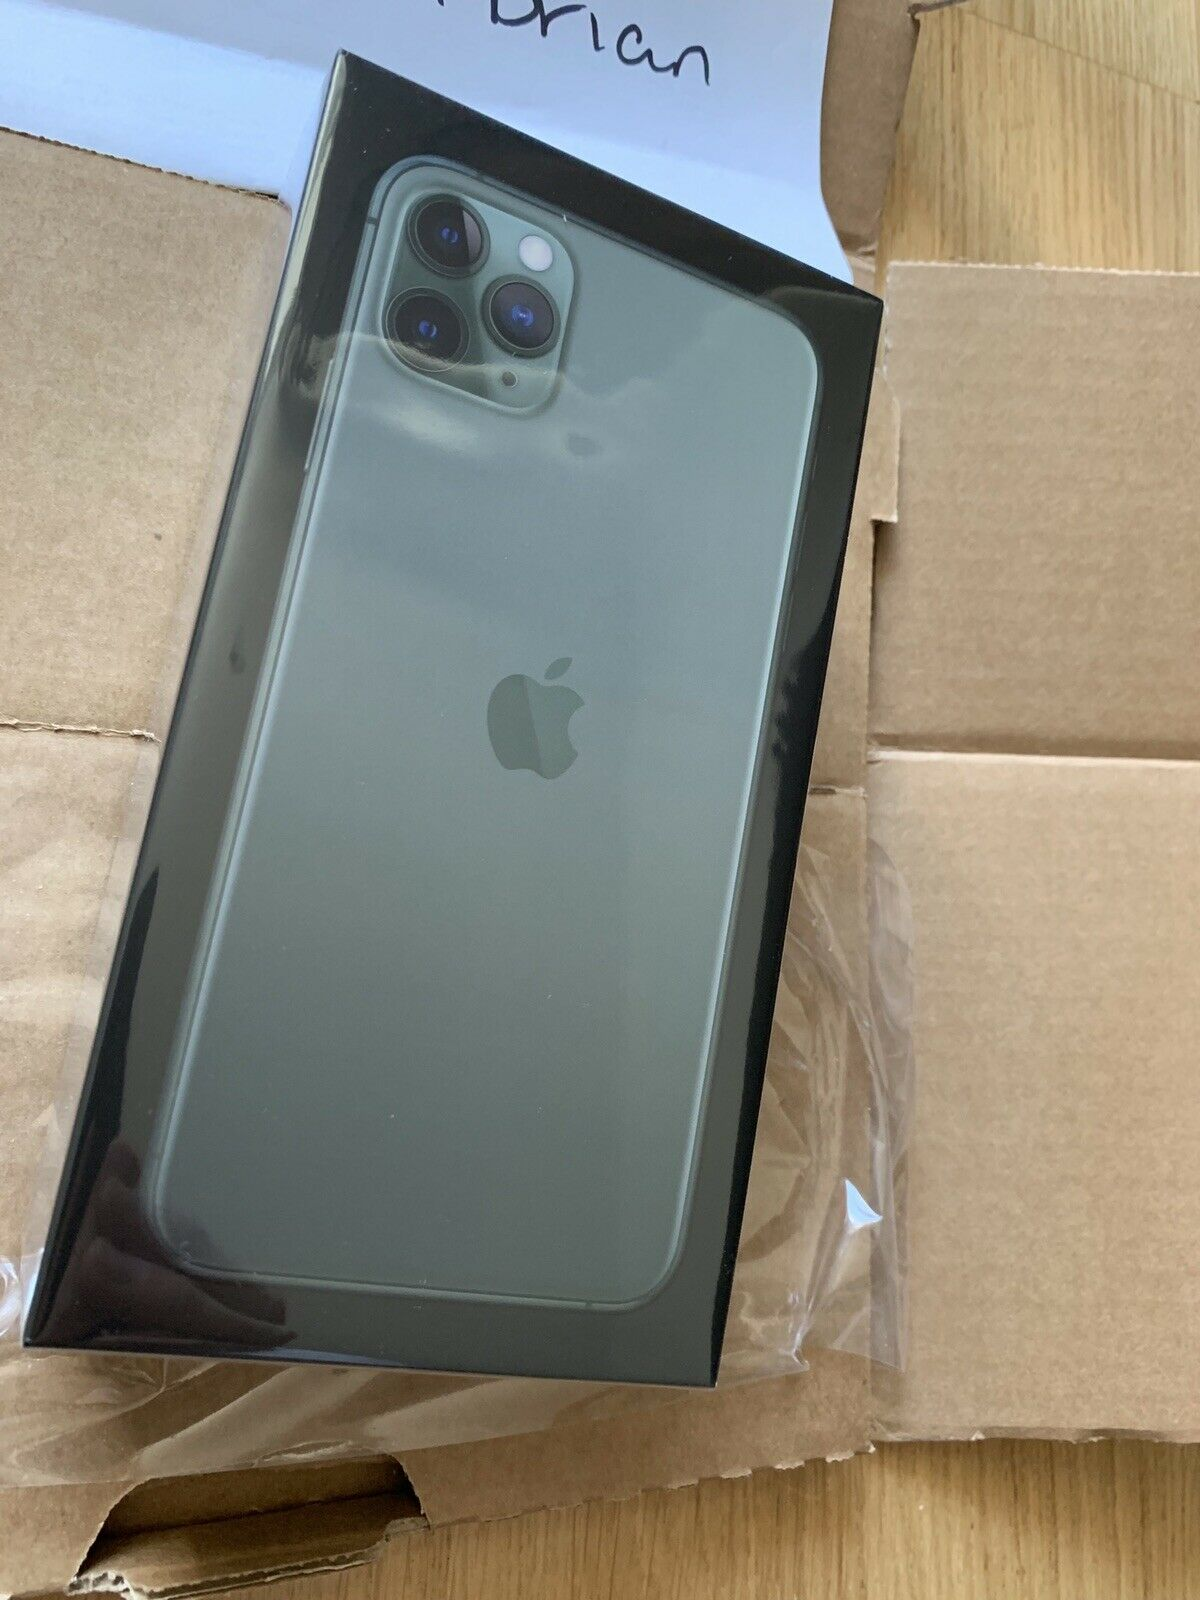 Apple iPhone 11 Pro Max 512GB Unlocked == $850 We sell all series of brand new original factory unlocked Apple iPhone